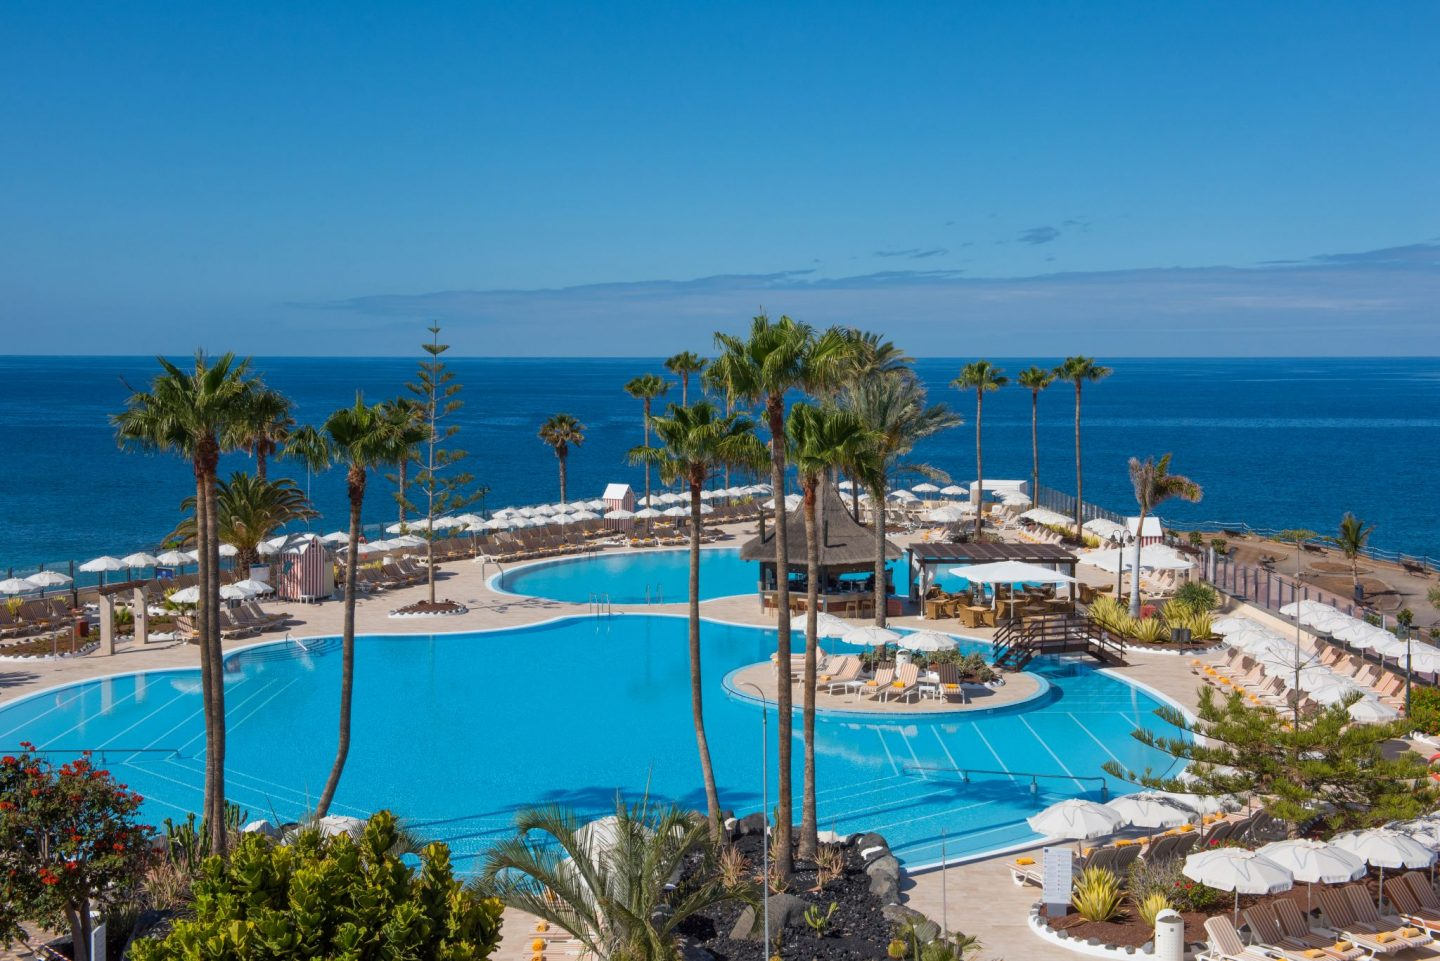 Why the Iberostar Anthelia Tenerife should be on your visit list